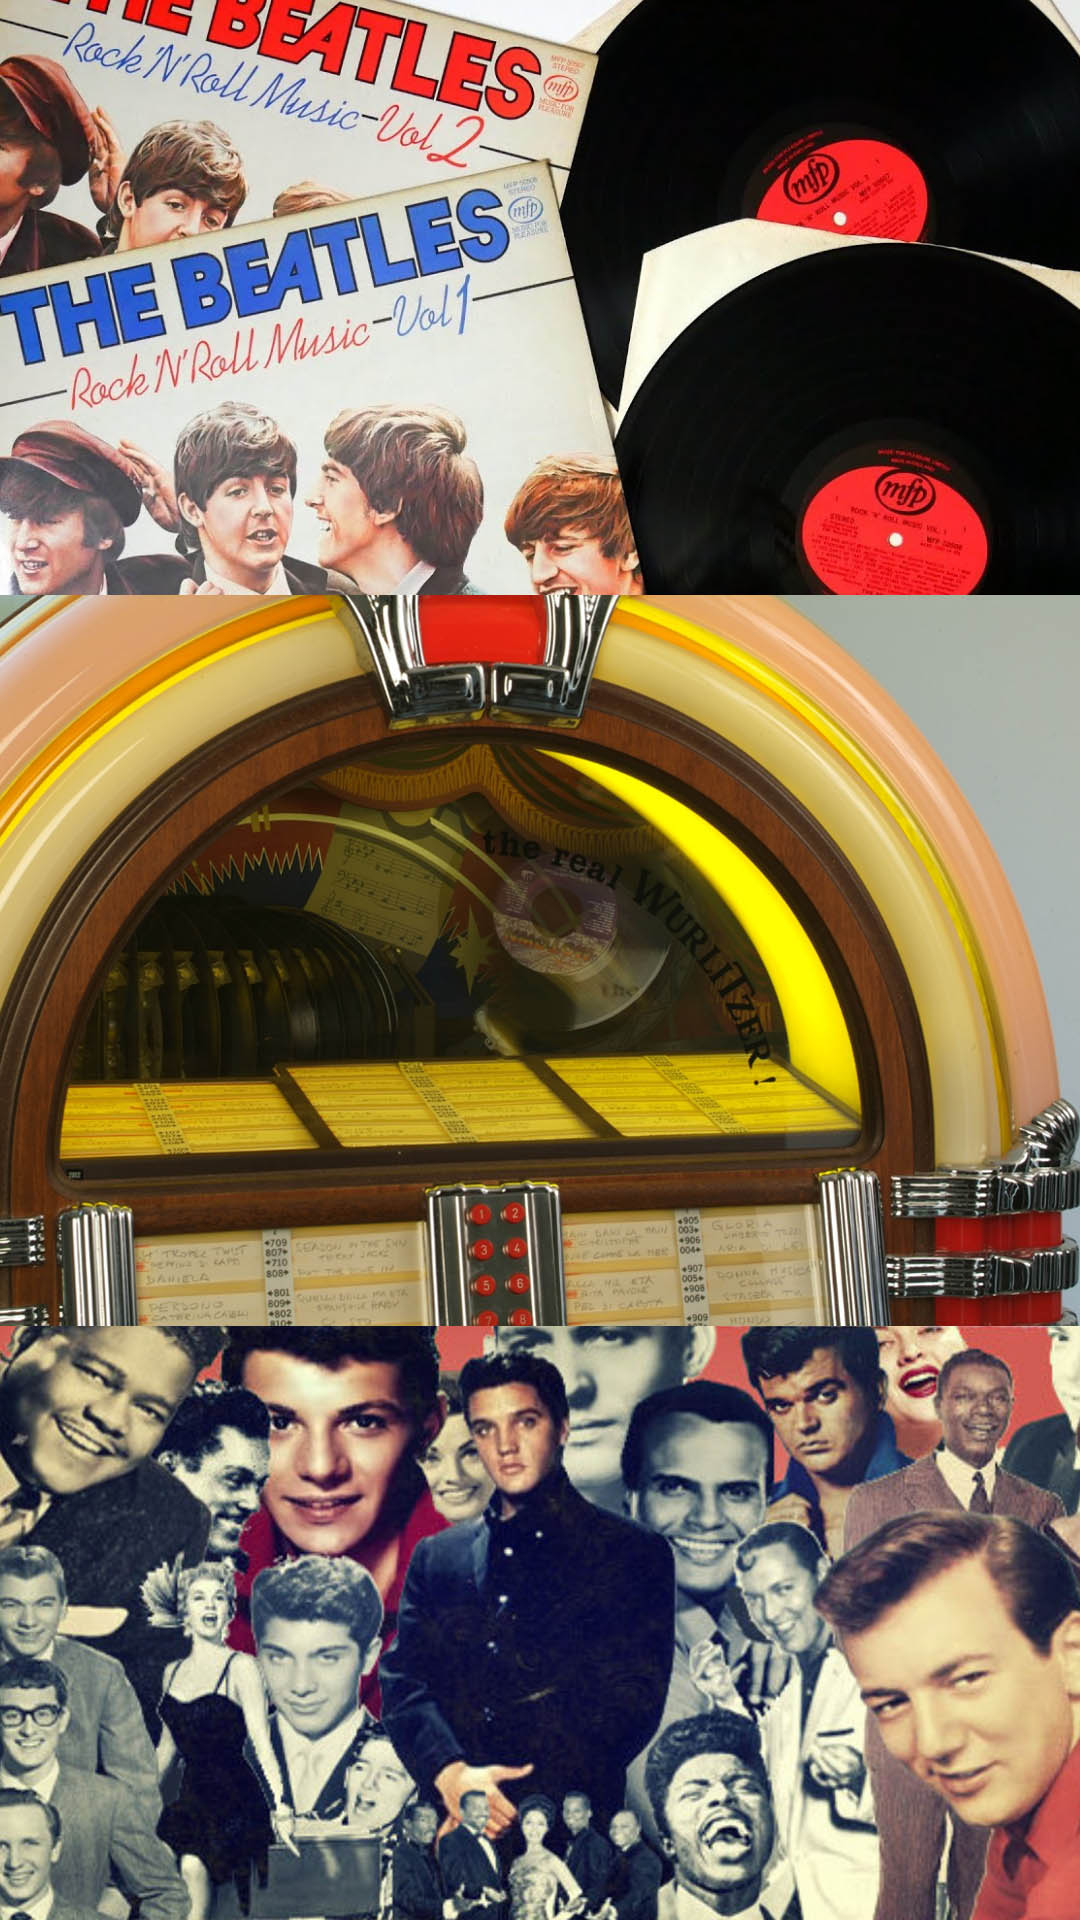 /Juke Box Days, Elvis, The Beatles and more